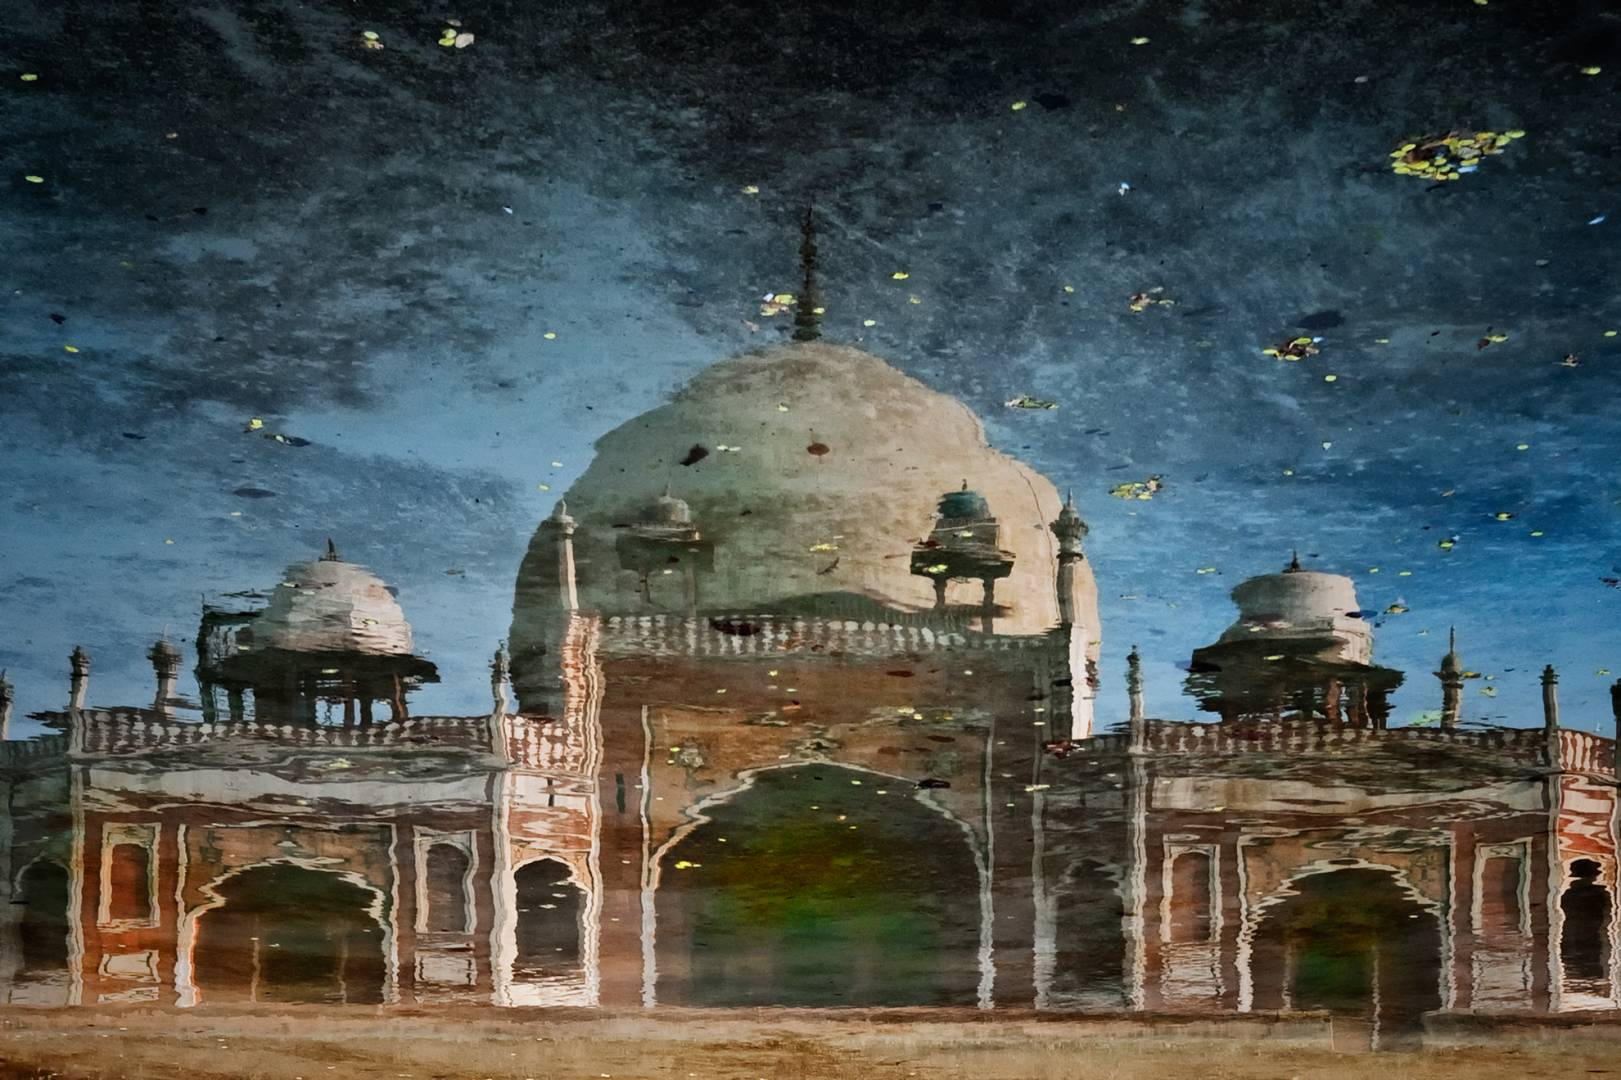 Humayun's Tomb in Nizamuddin reflected in a pool before its magnificent restoration.